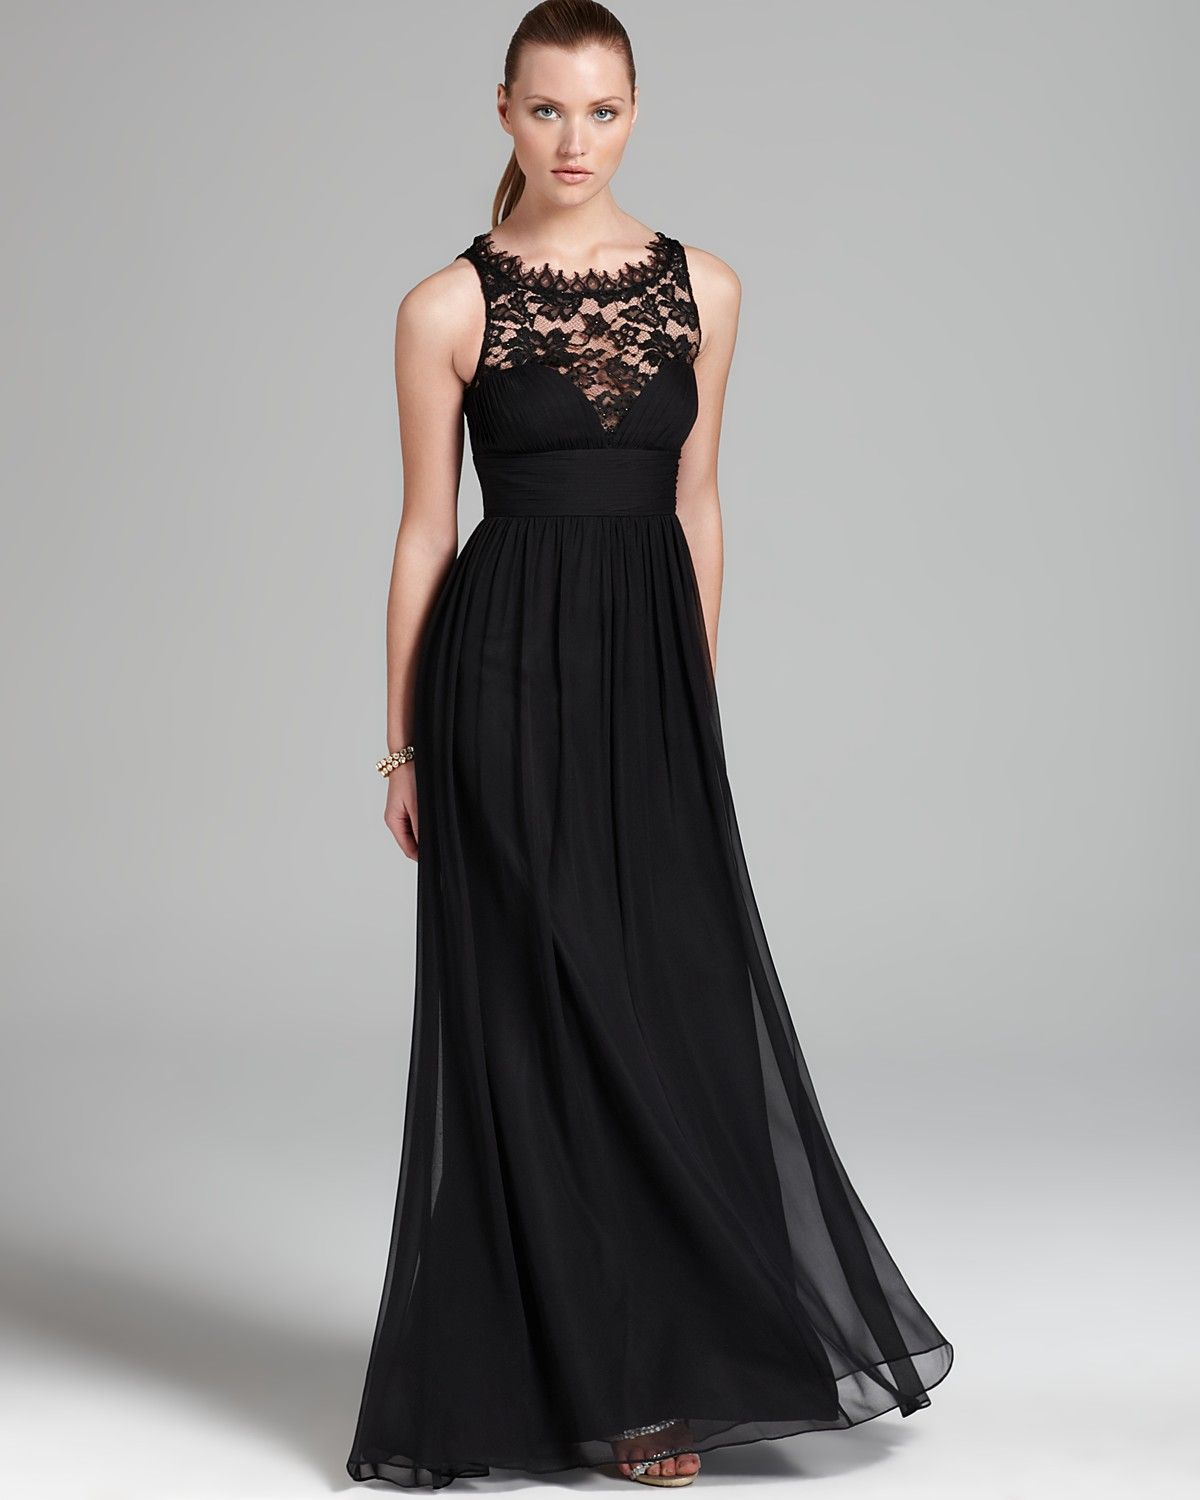 Aidan mattox gown lace neckline sleeveless bloomingdales enjoy the country black chiffon and lace jewel long bridesmiad dress with various shades of colorsaffordable bridesmaid dress featuring the latest designs ombrellifo Images